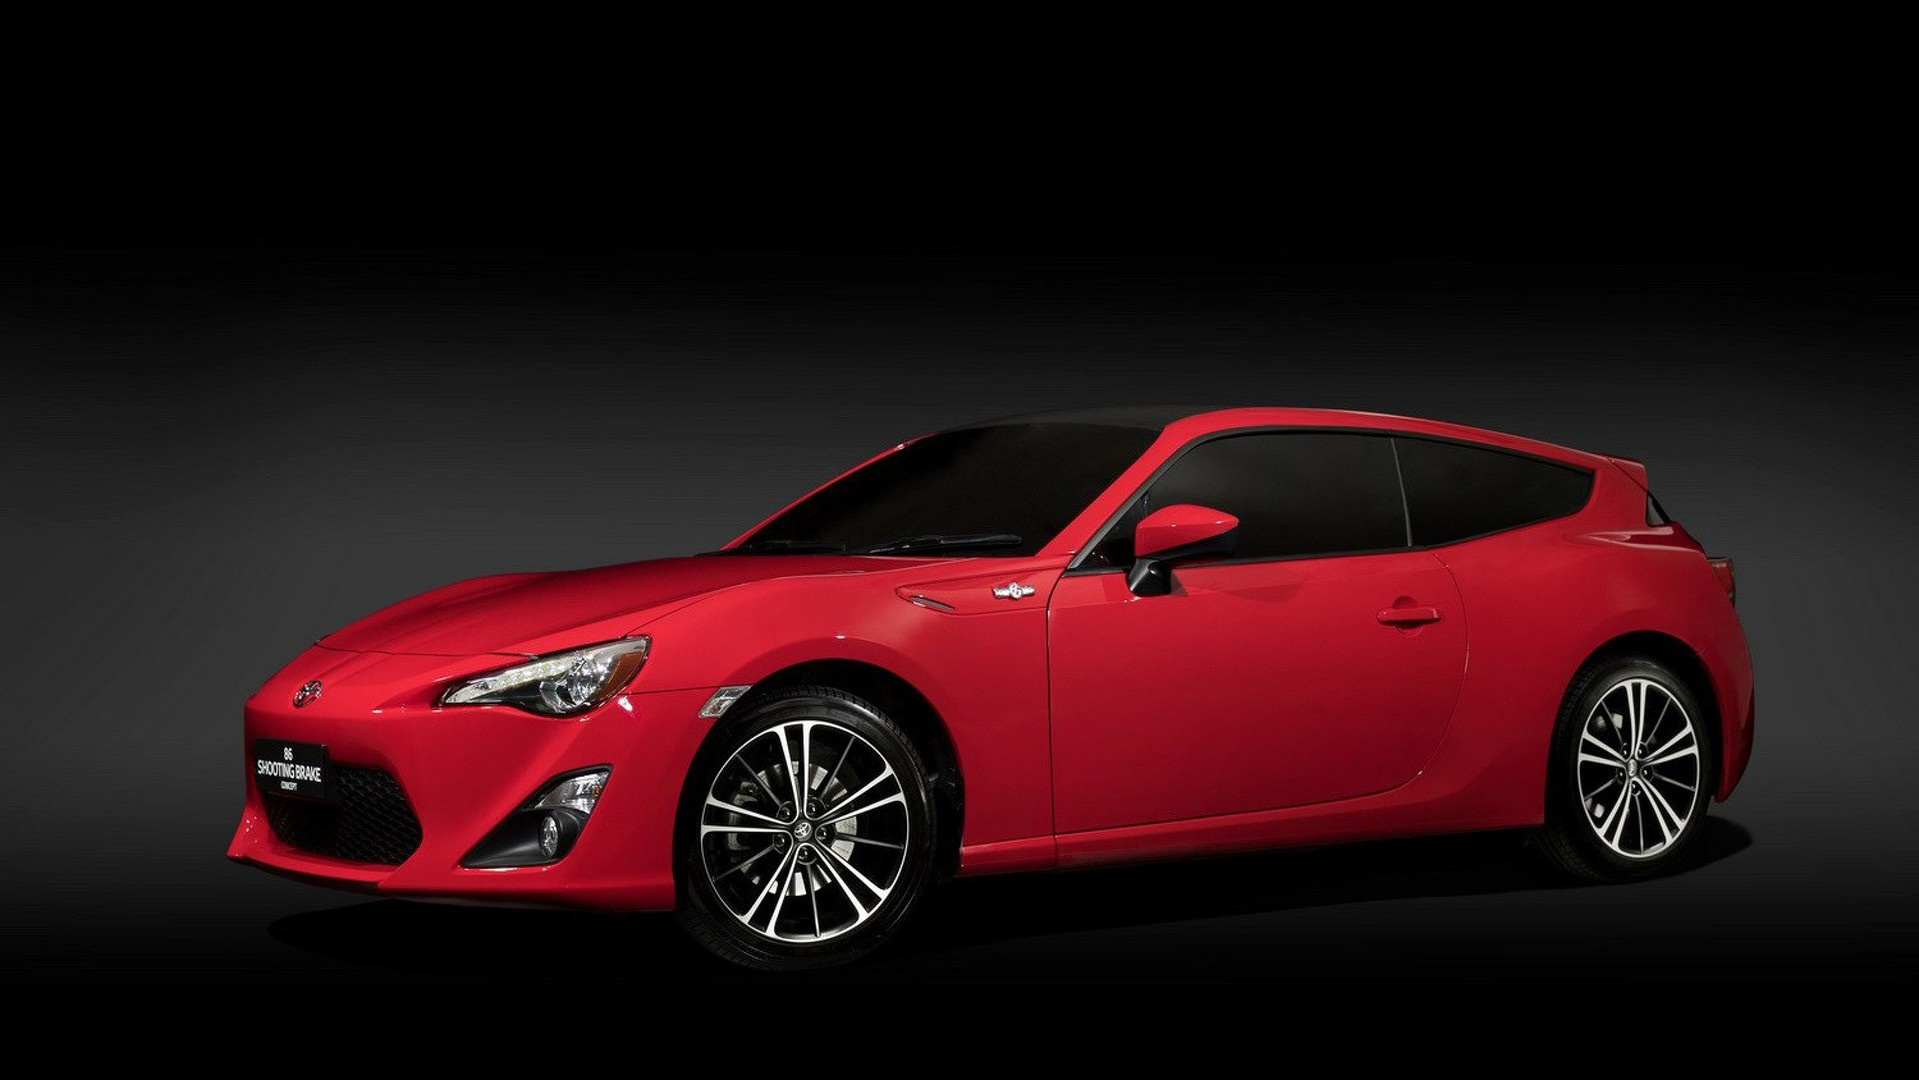 Toyota GT86 Shooting Brake Wallpapers Images Photos 1919x1080